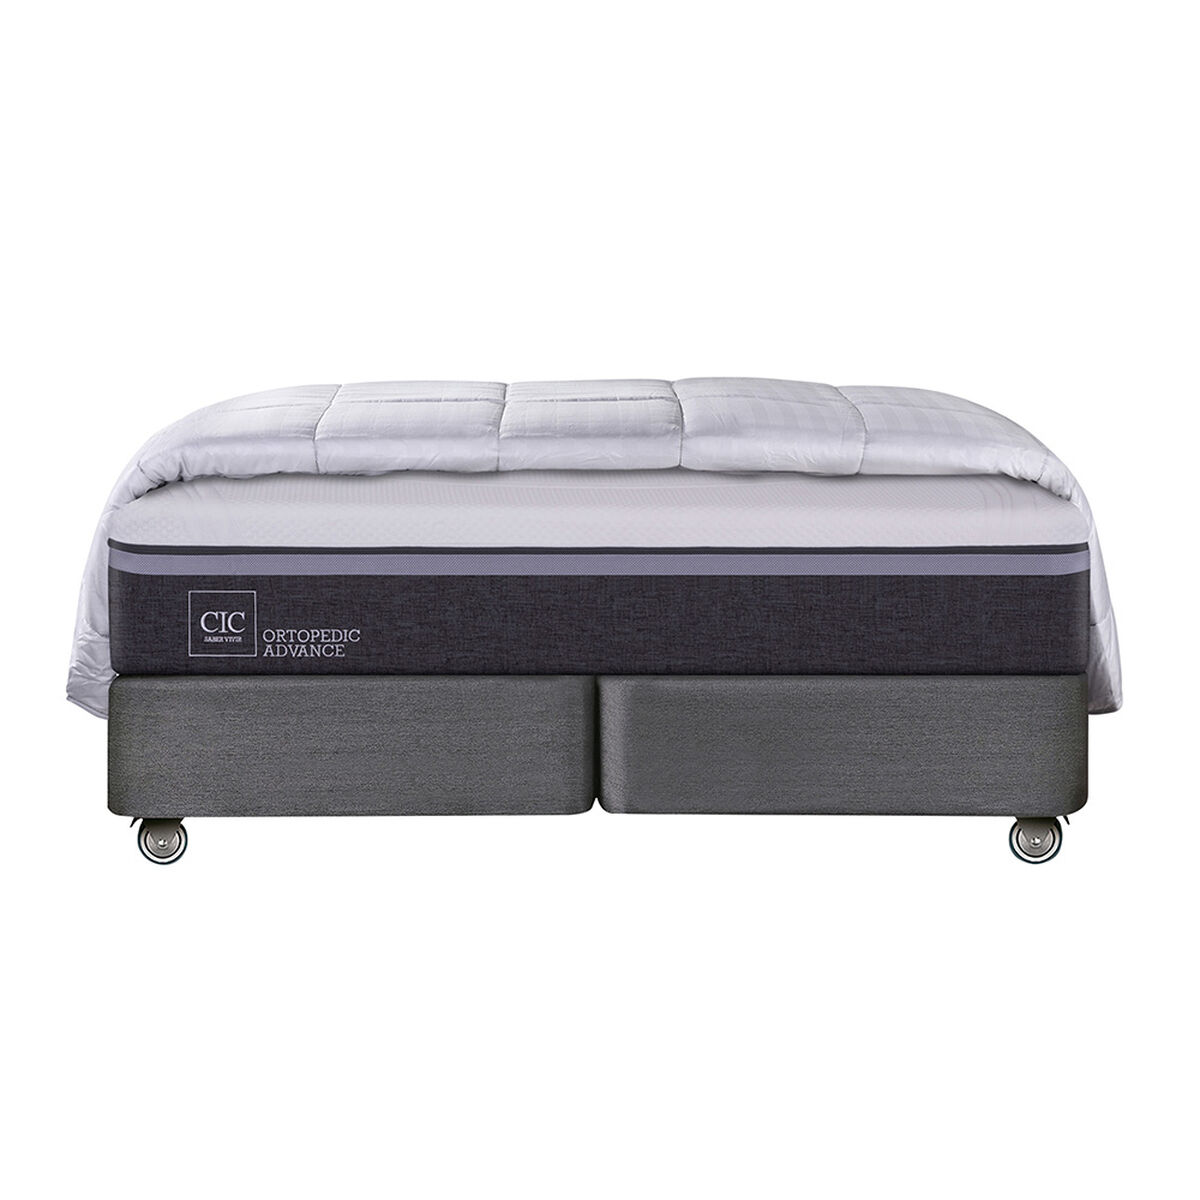 Box Spring CIC Base Dividida King Ortopedic Advance + Plumón